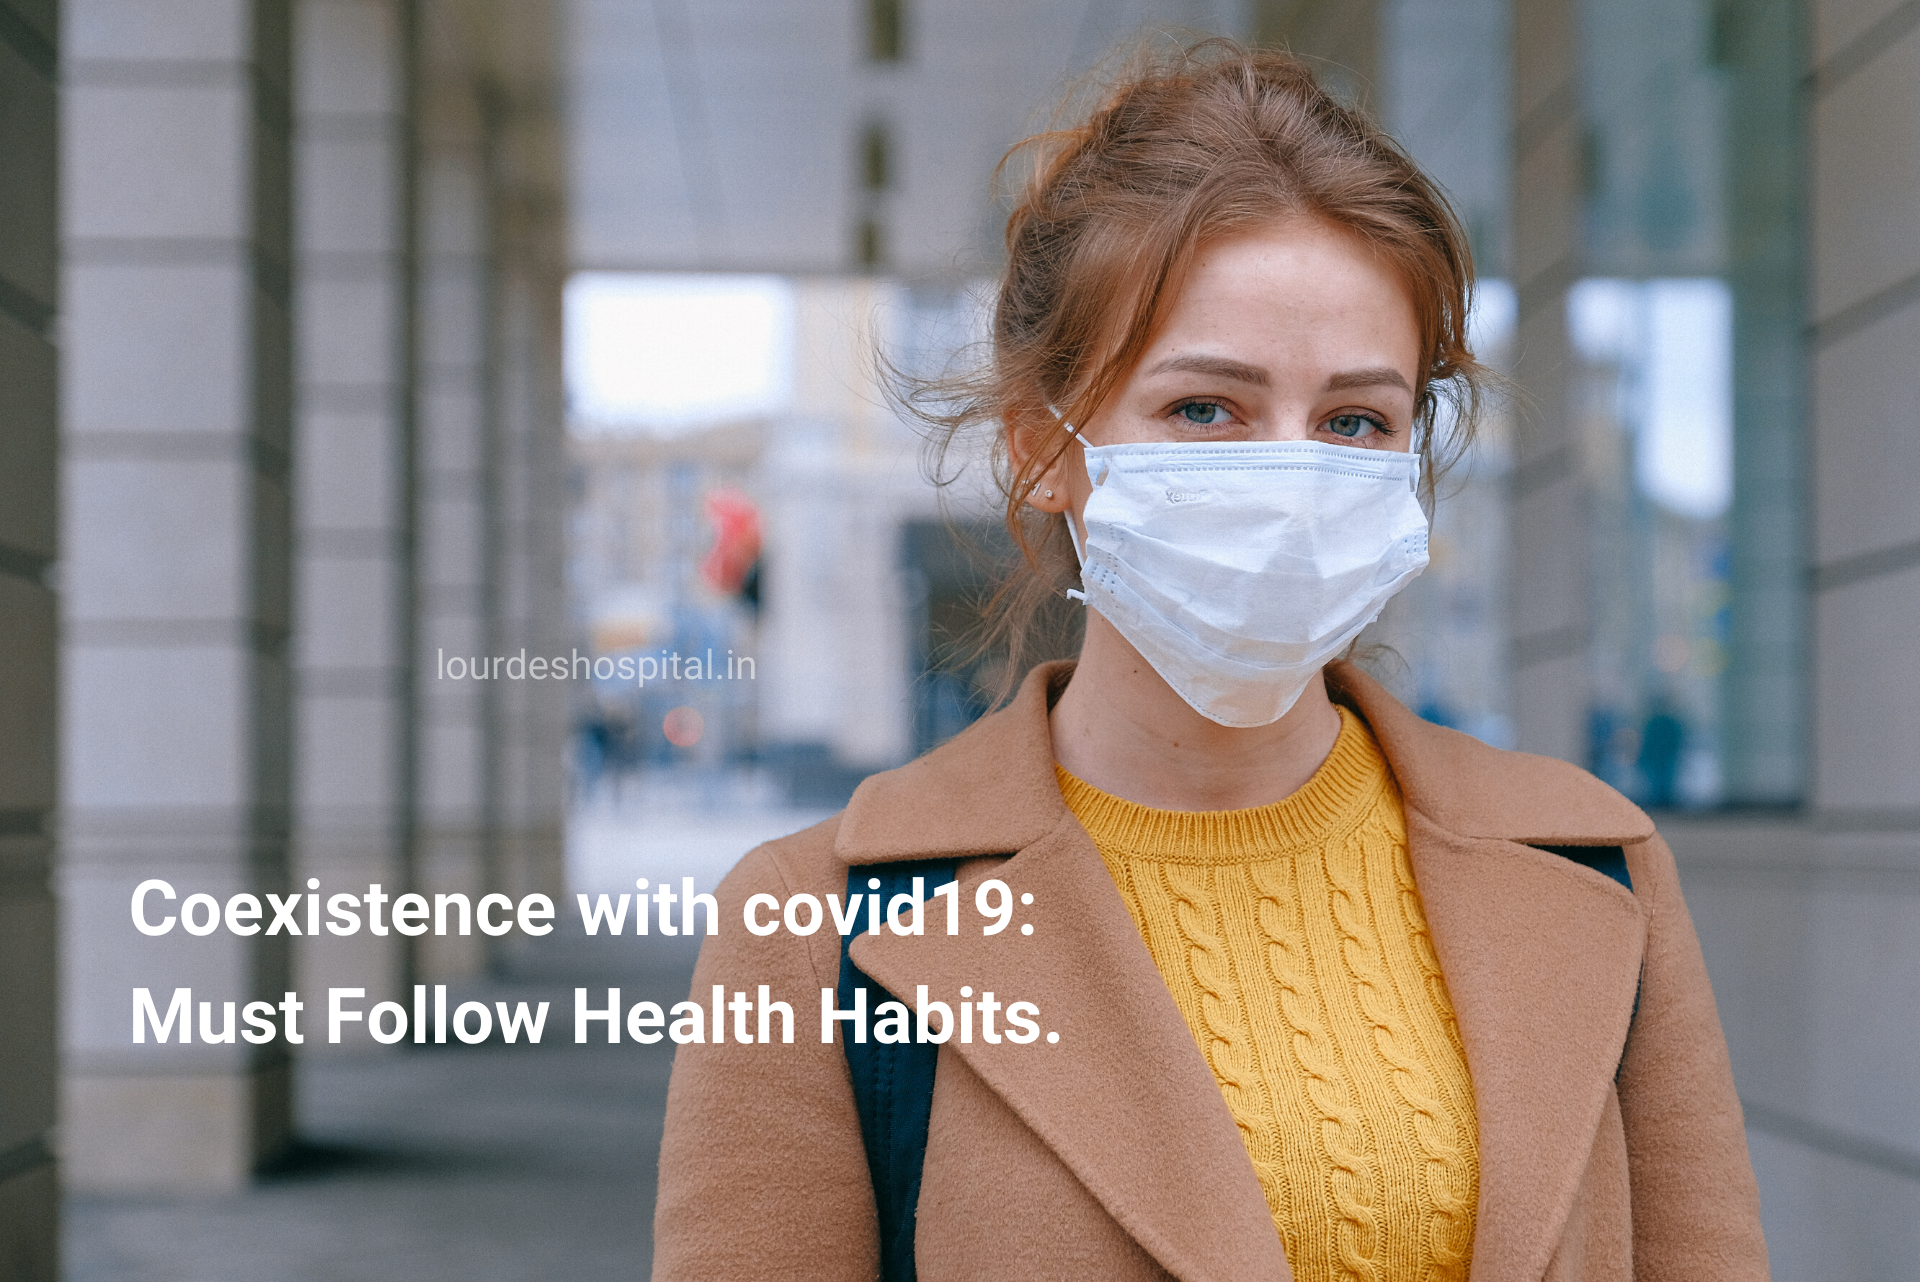 Coexistence with covid19: Must Follow Health Habits